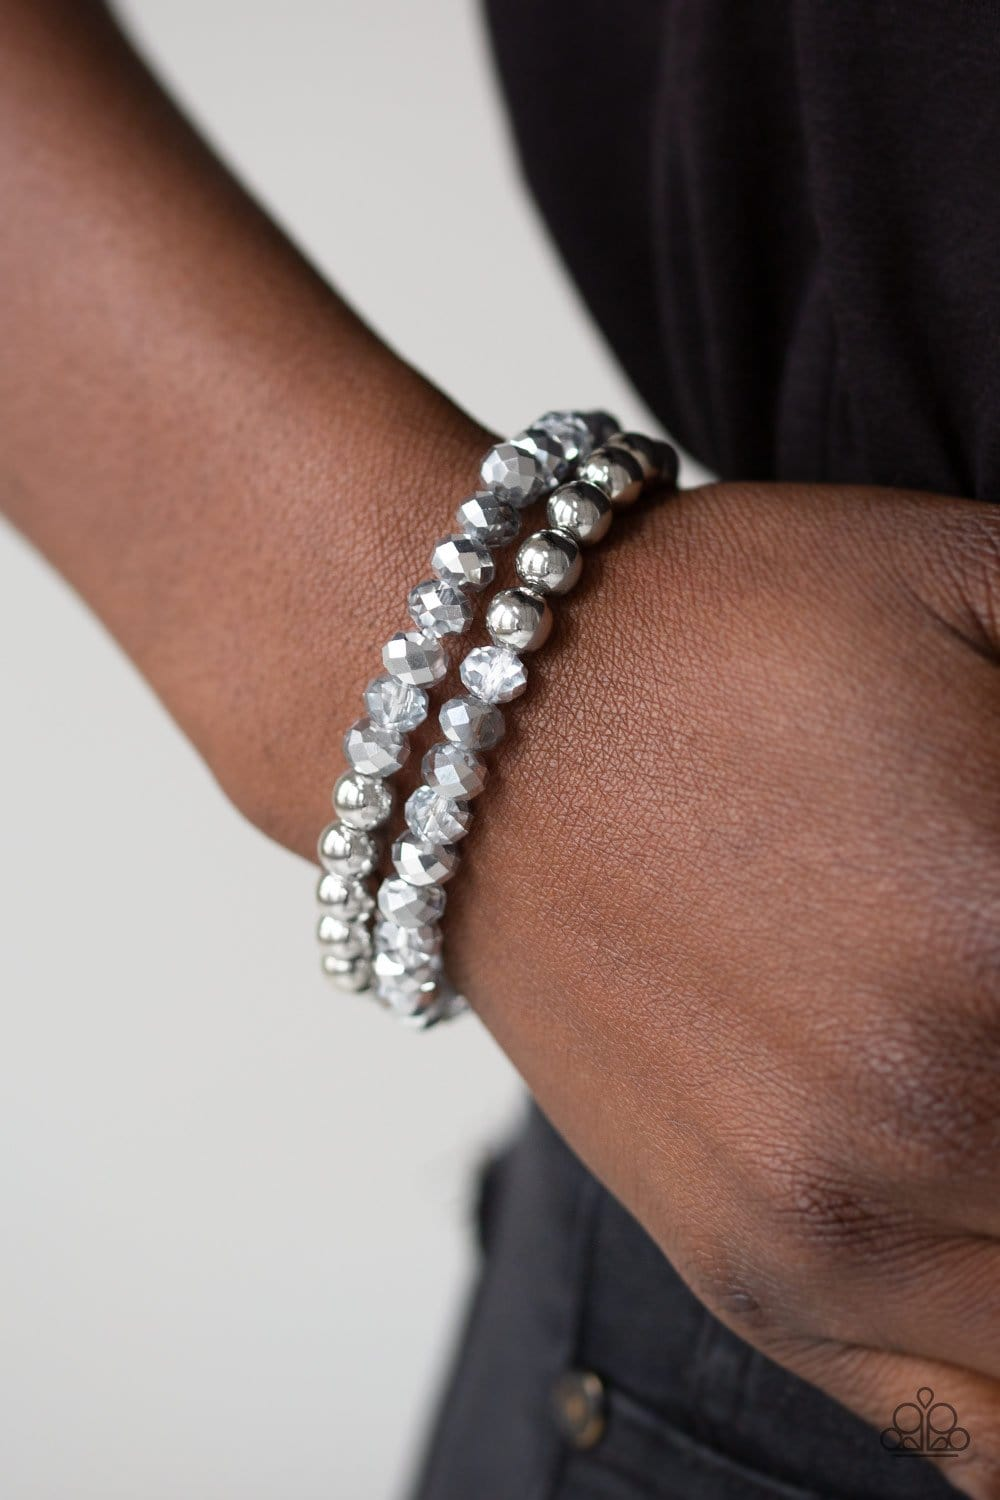 Chroma Color - Silver: Paparazzi Accessories - Jewels N' Thingz Boutique